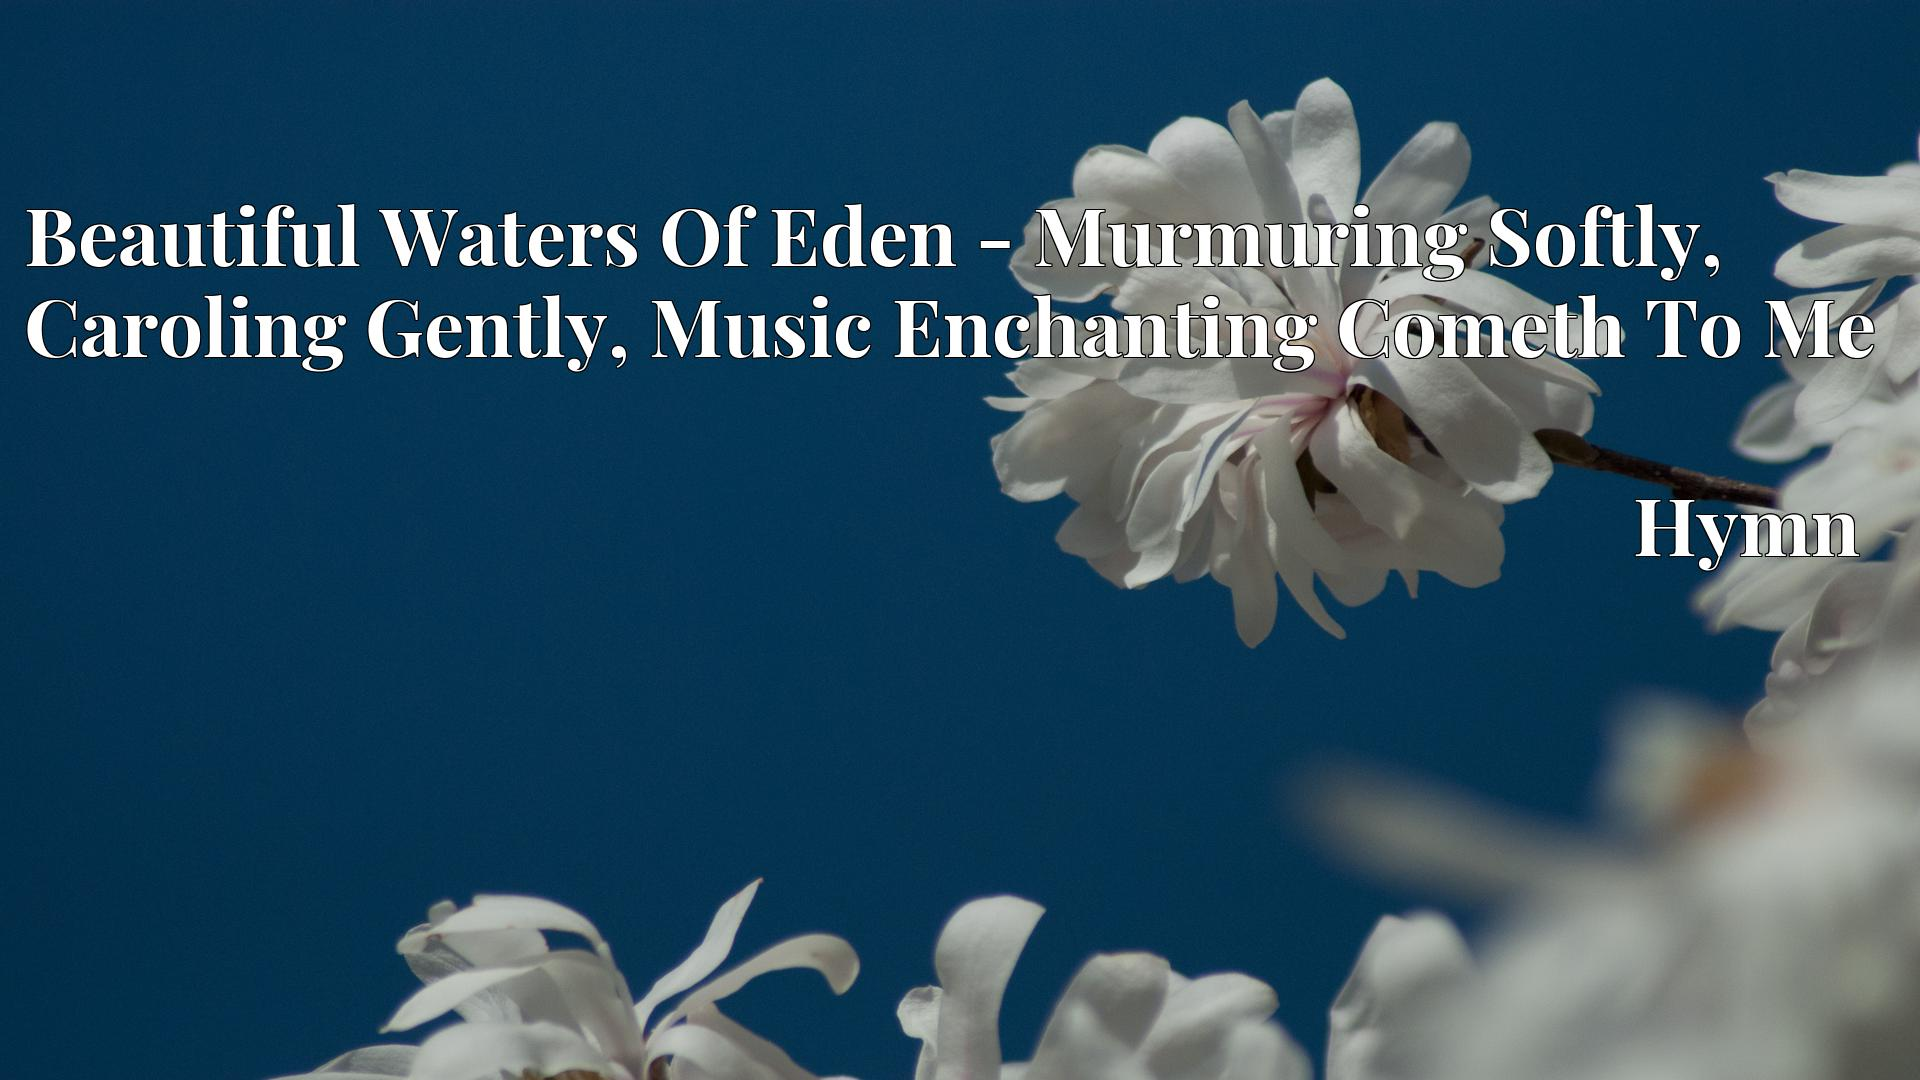 Beautiful Waters Of Eden - Murmuring Softly, Caroling Gently, Music Enchanting Cometh To Me - Hymn